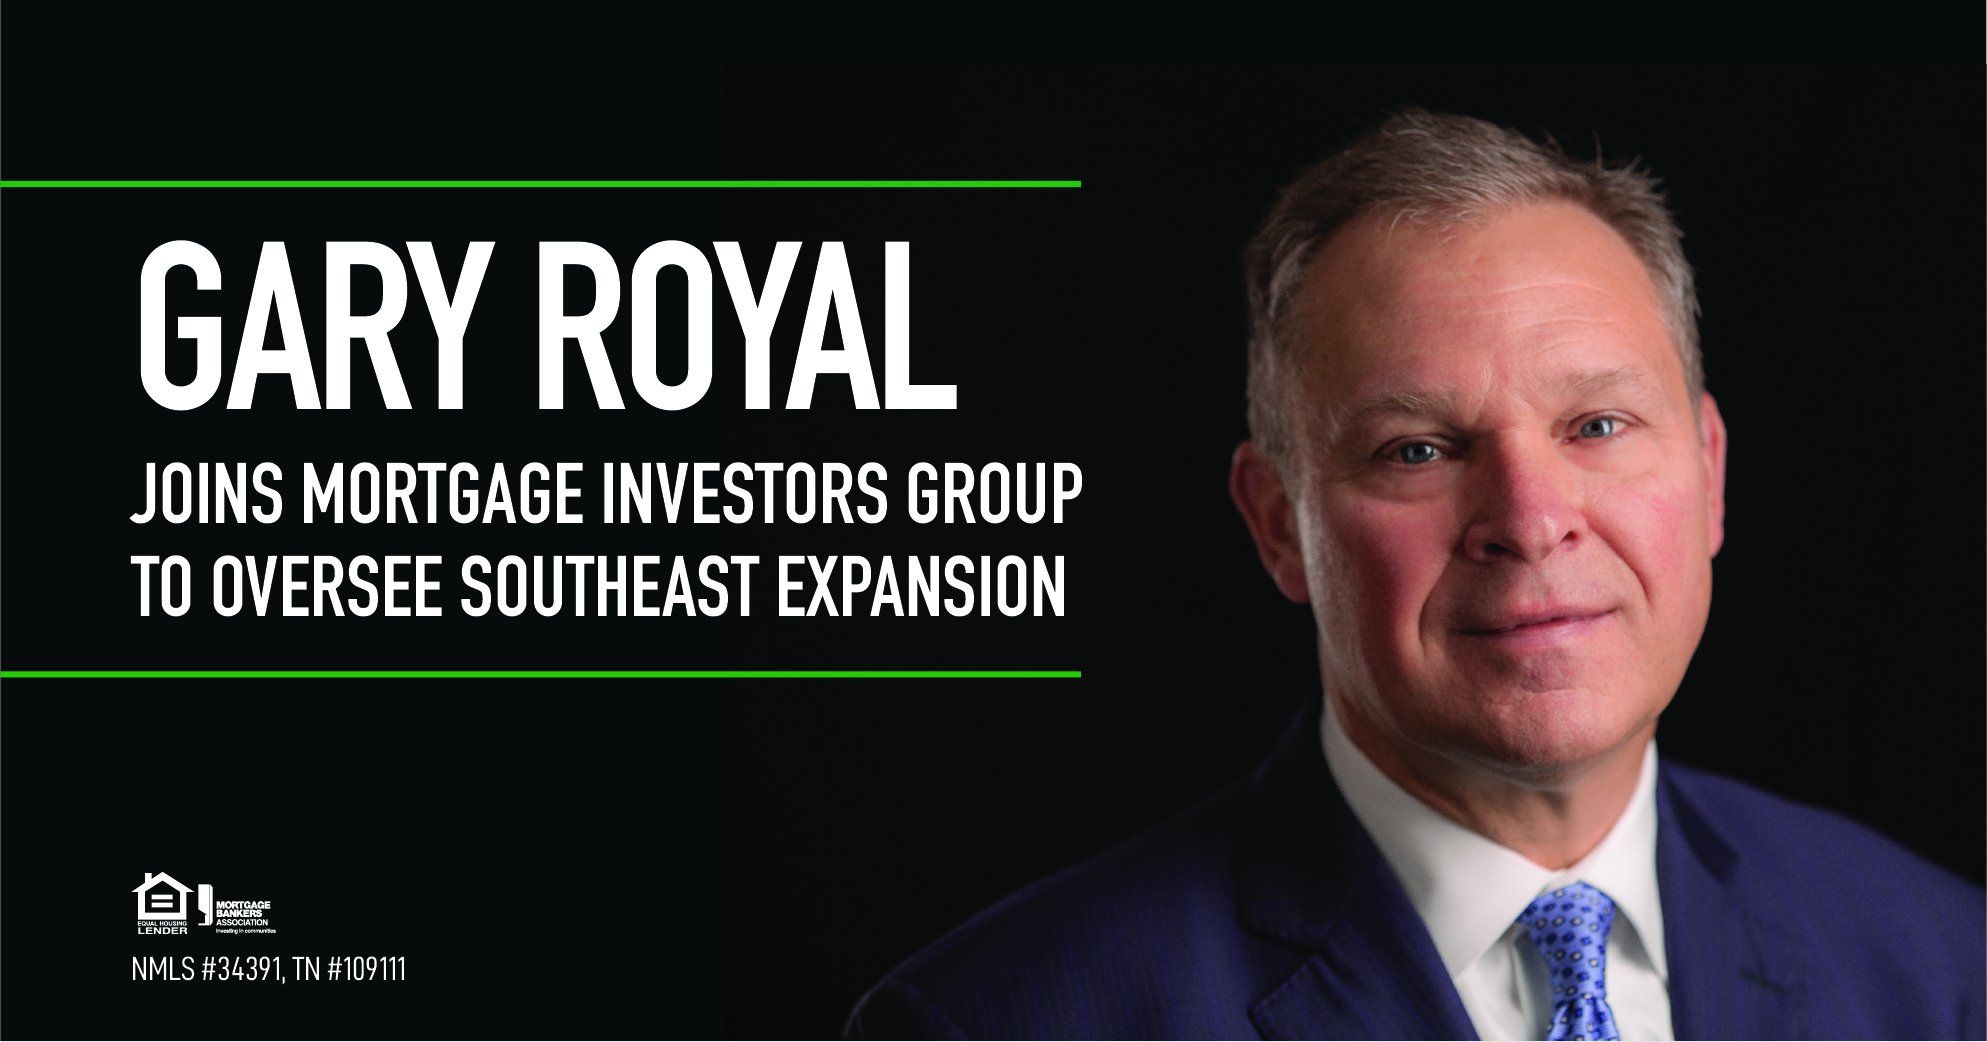 GARY ROYAL JOINS MORTGAGE INVESTORS GROUP TO OVERSEE SOUTHEAST EXPANSION